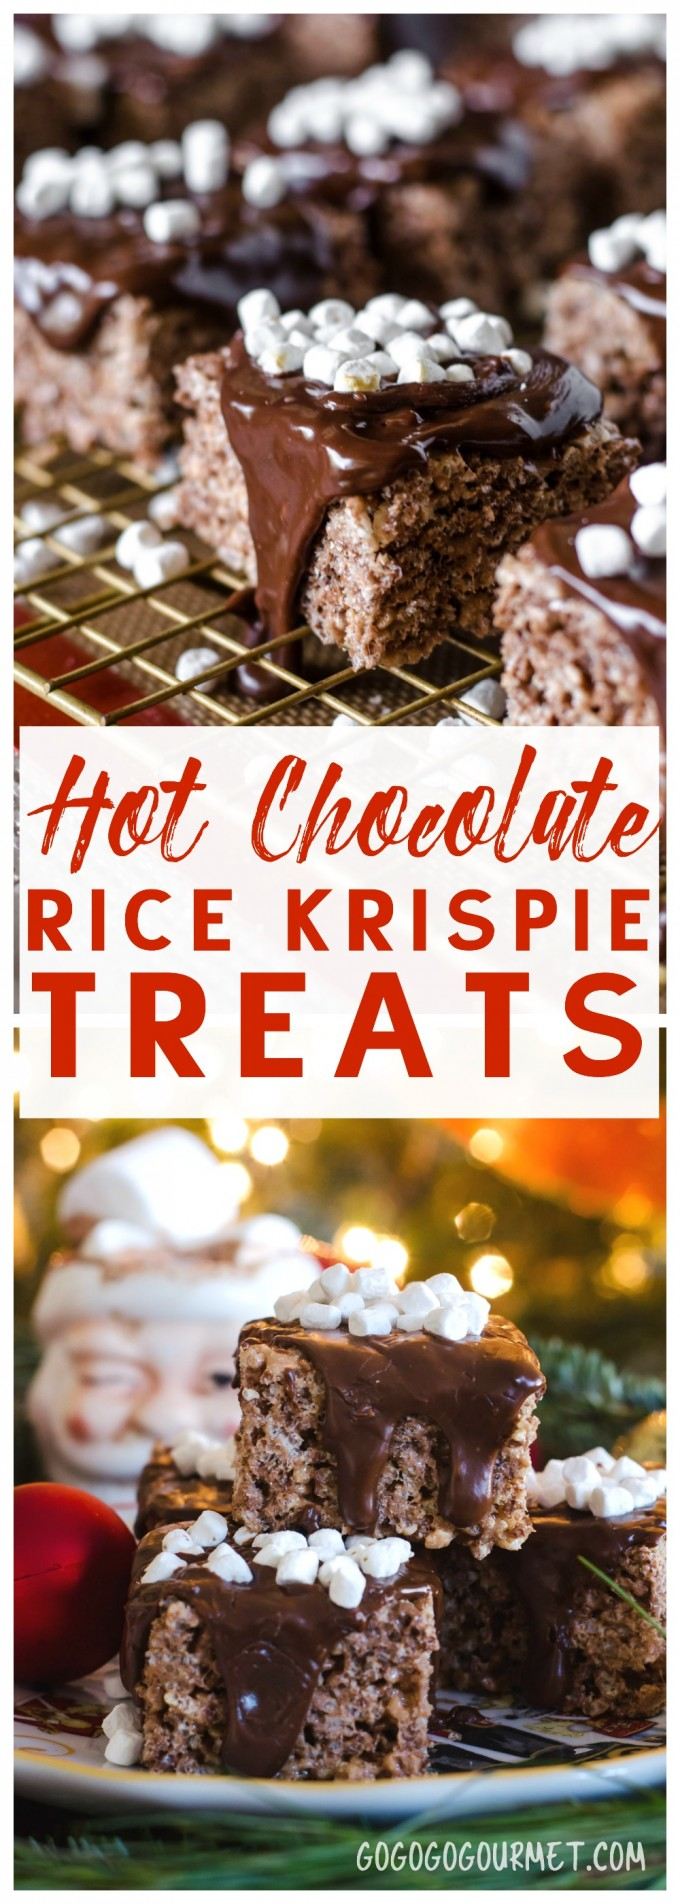 Hot Chocolate Rice Krispie Treats- a fast and easy holiday no-bake treat!!